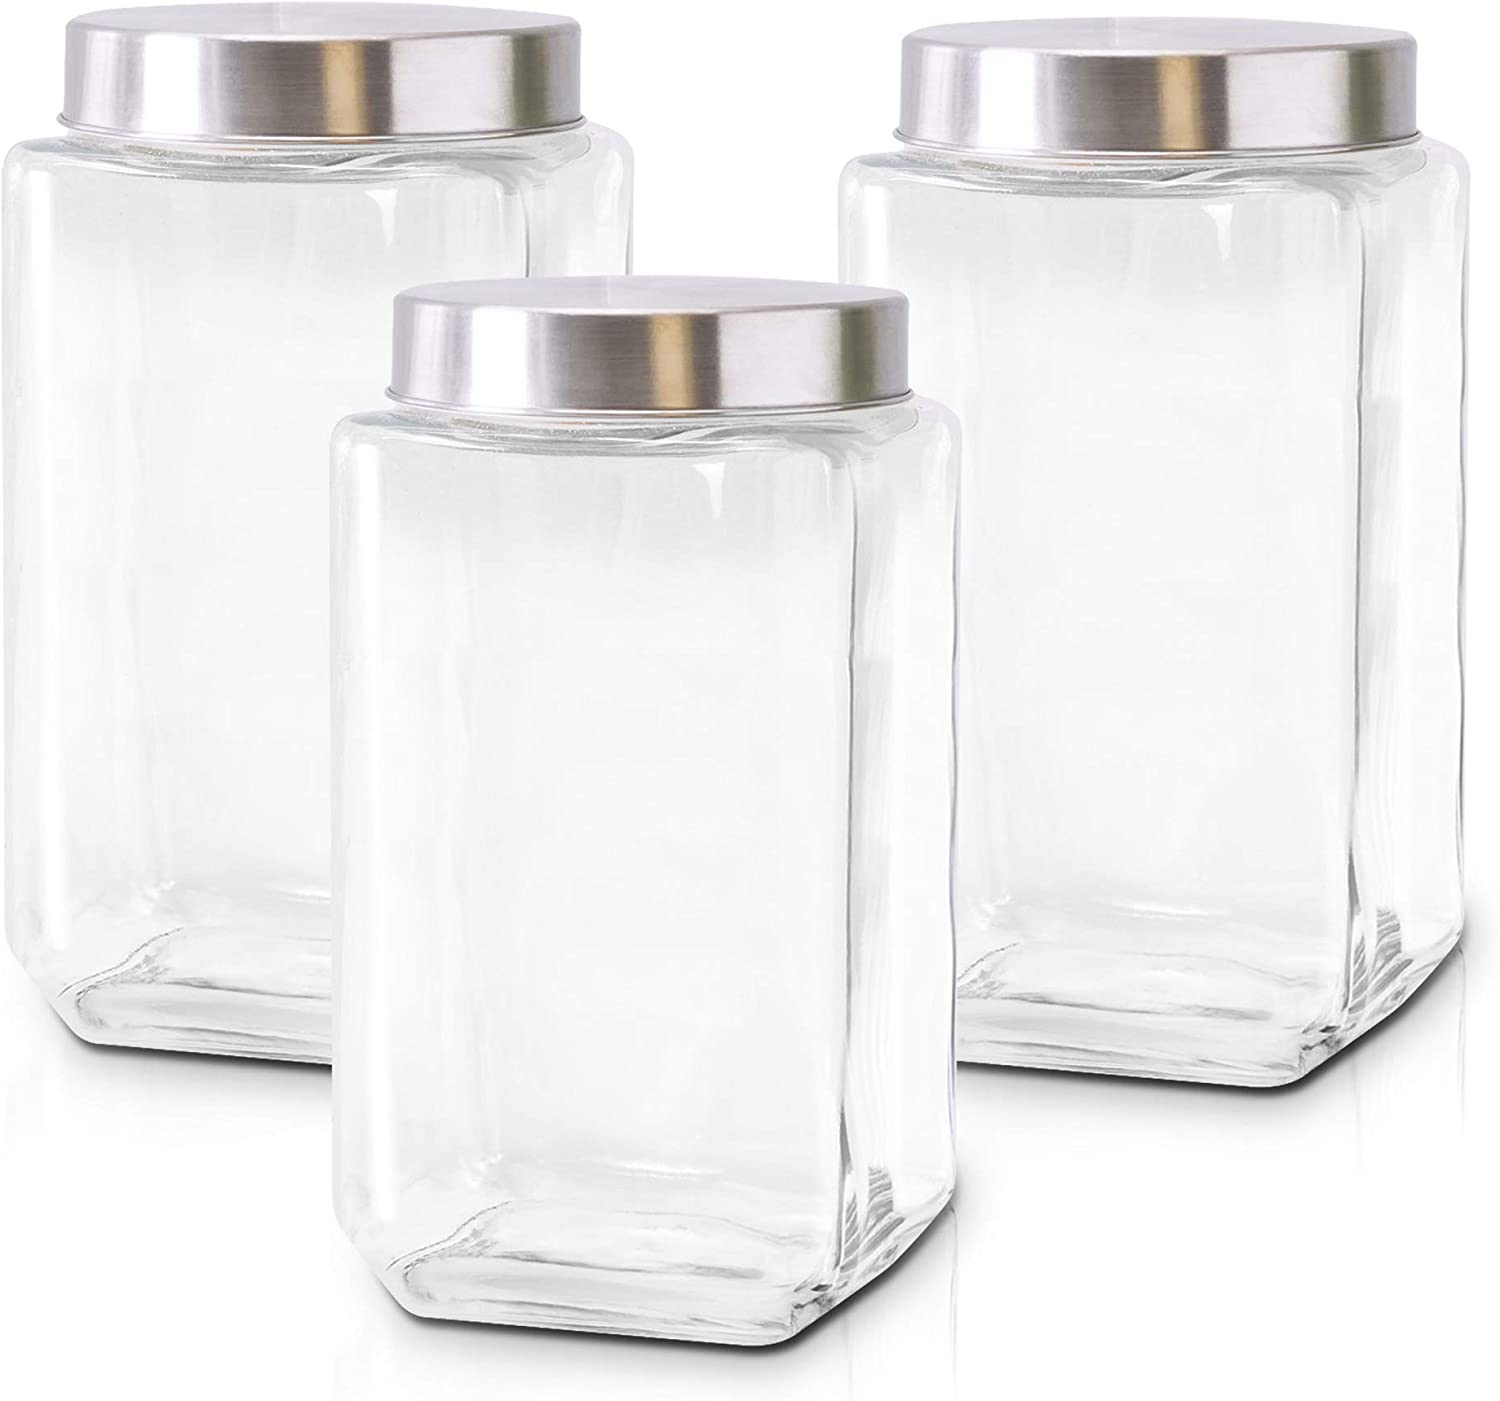 Glass Containers for Kitchen – Set of 3 Large Food Storage Containers – 70Oz Storage Jars with Stainless Steel Lids – Suitable for Snacks, Flour, Sugar, Pet Treats – Airtight Screw-On Lid